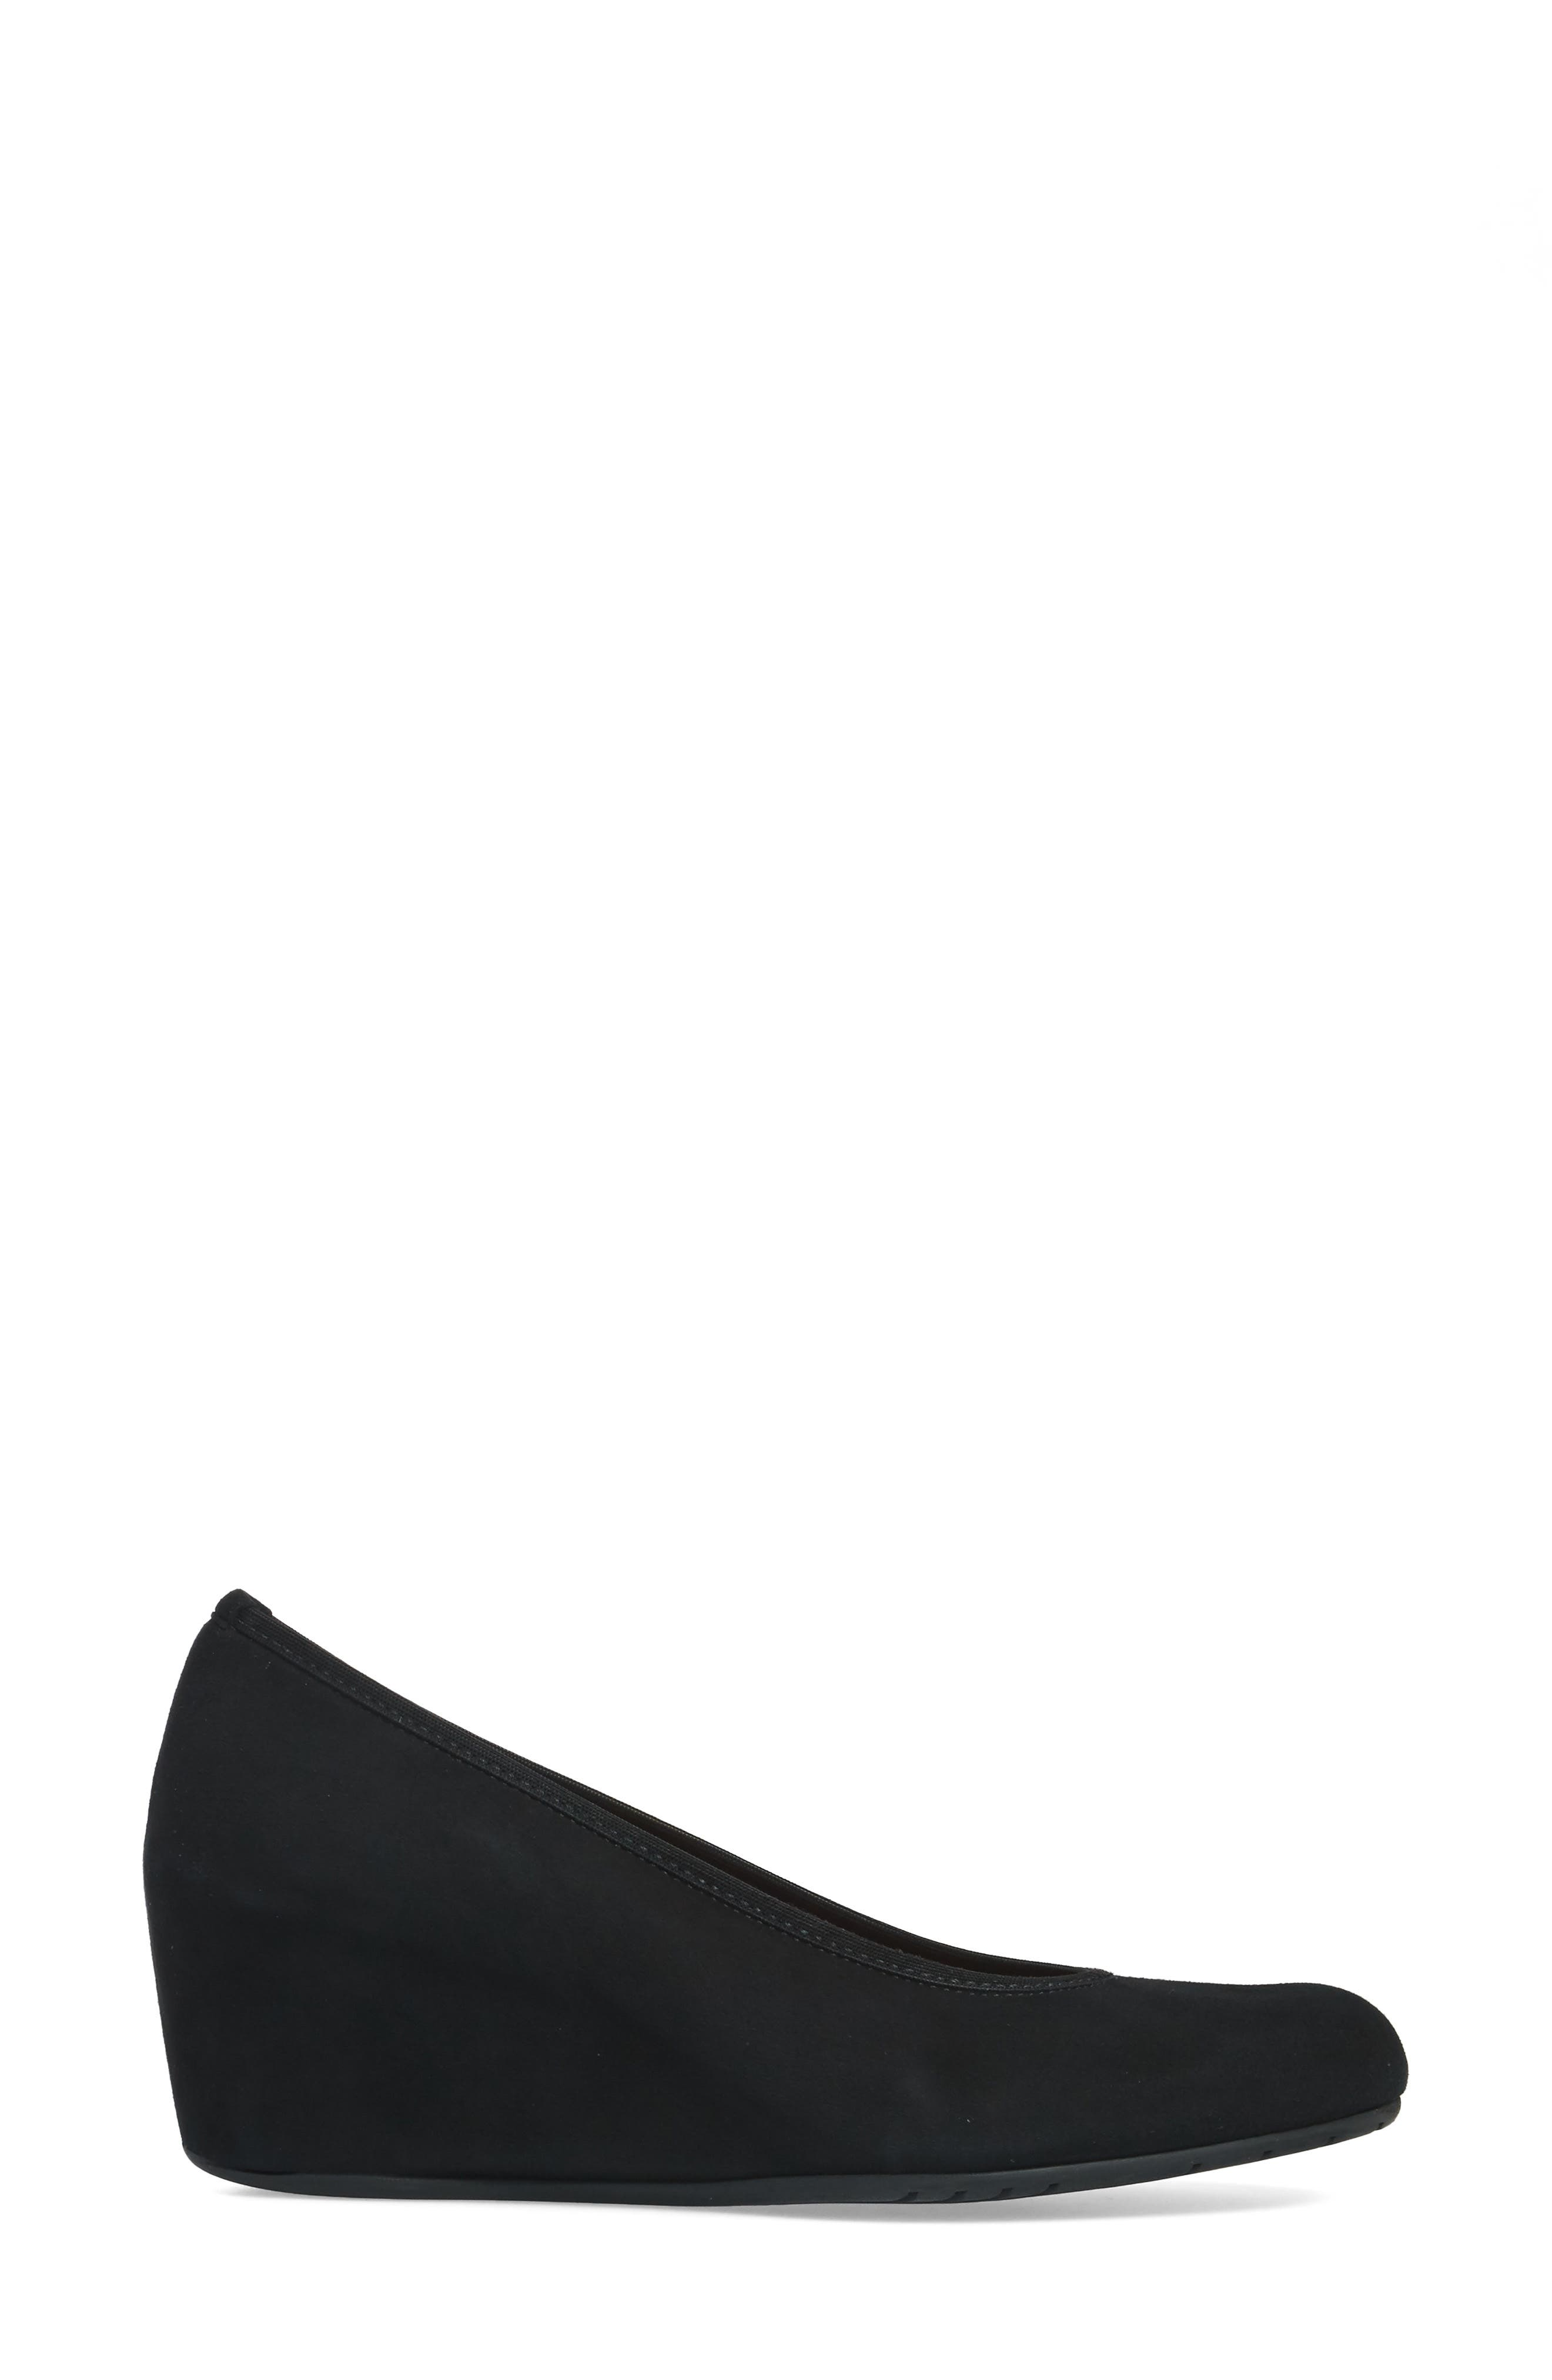 Malina Wedge,                             Alternate thumbnail 3, color,                             Black Suede